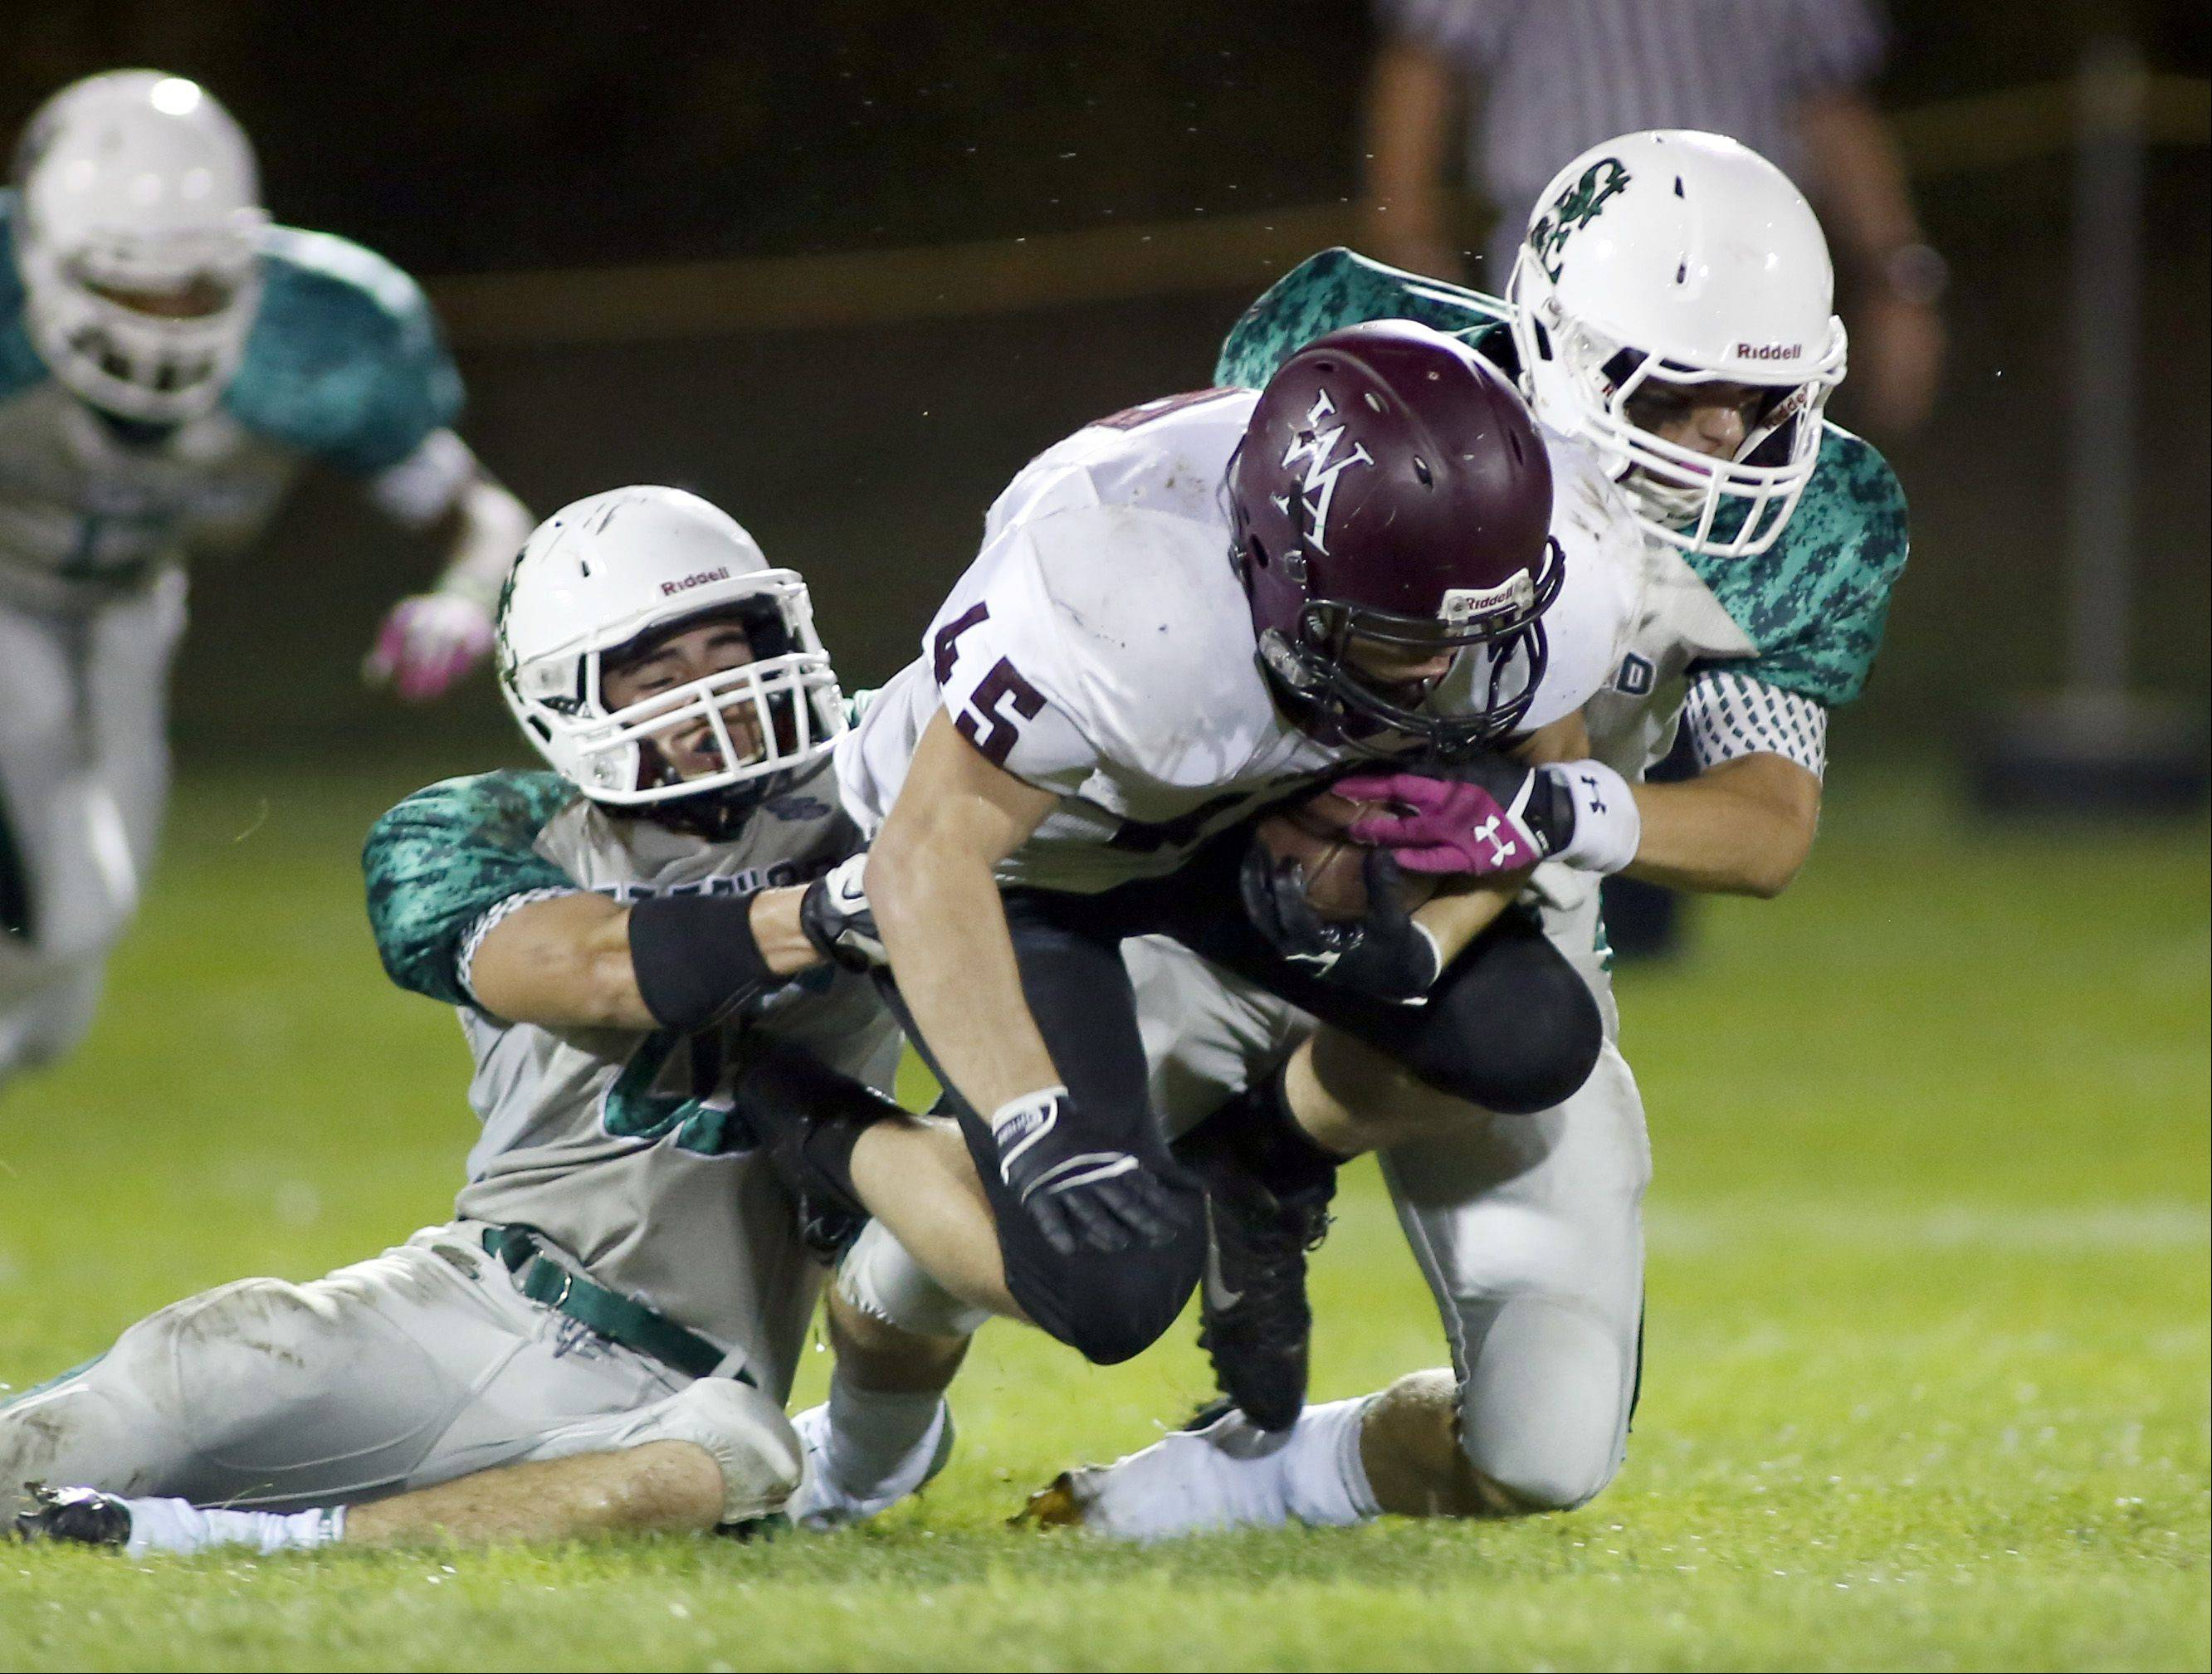 Wheaton Academy's John Gemmel tries to get extra yardage as St. Edward's William Bothwell and Matthew Colasuono reel him in .